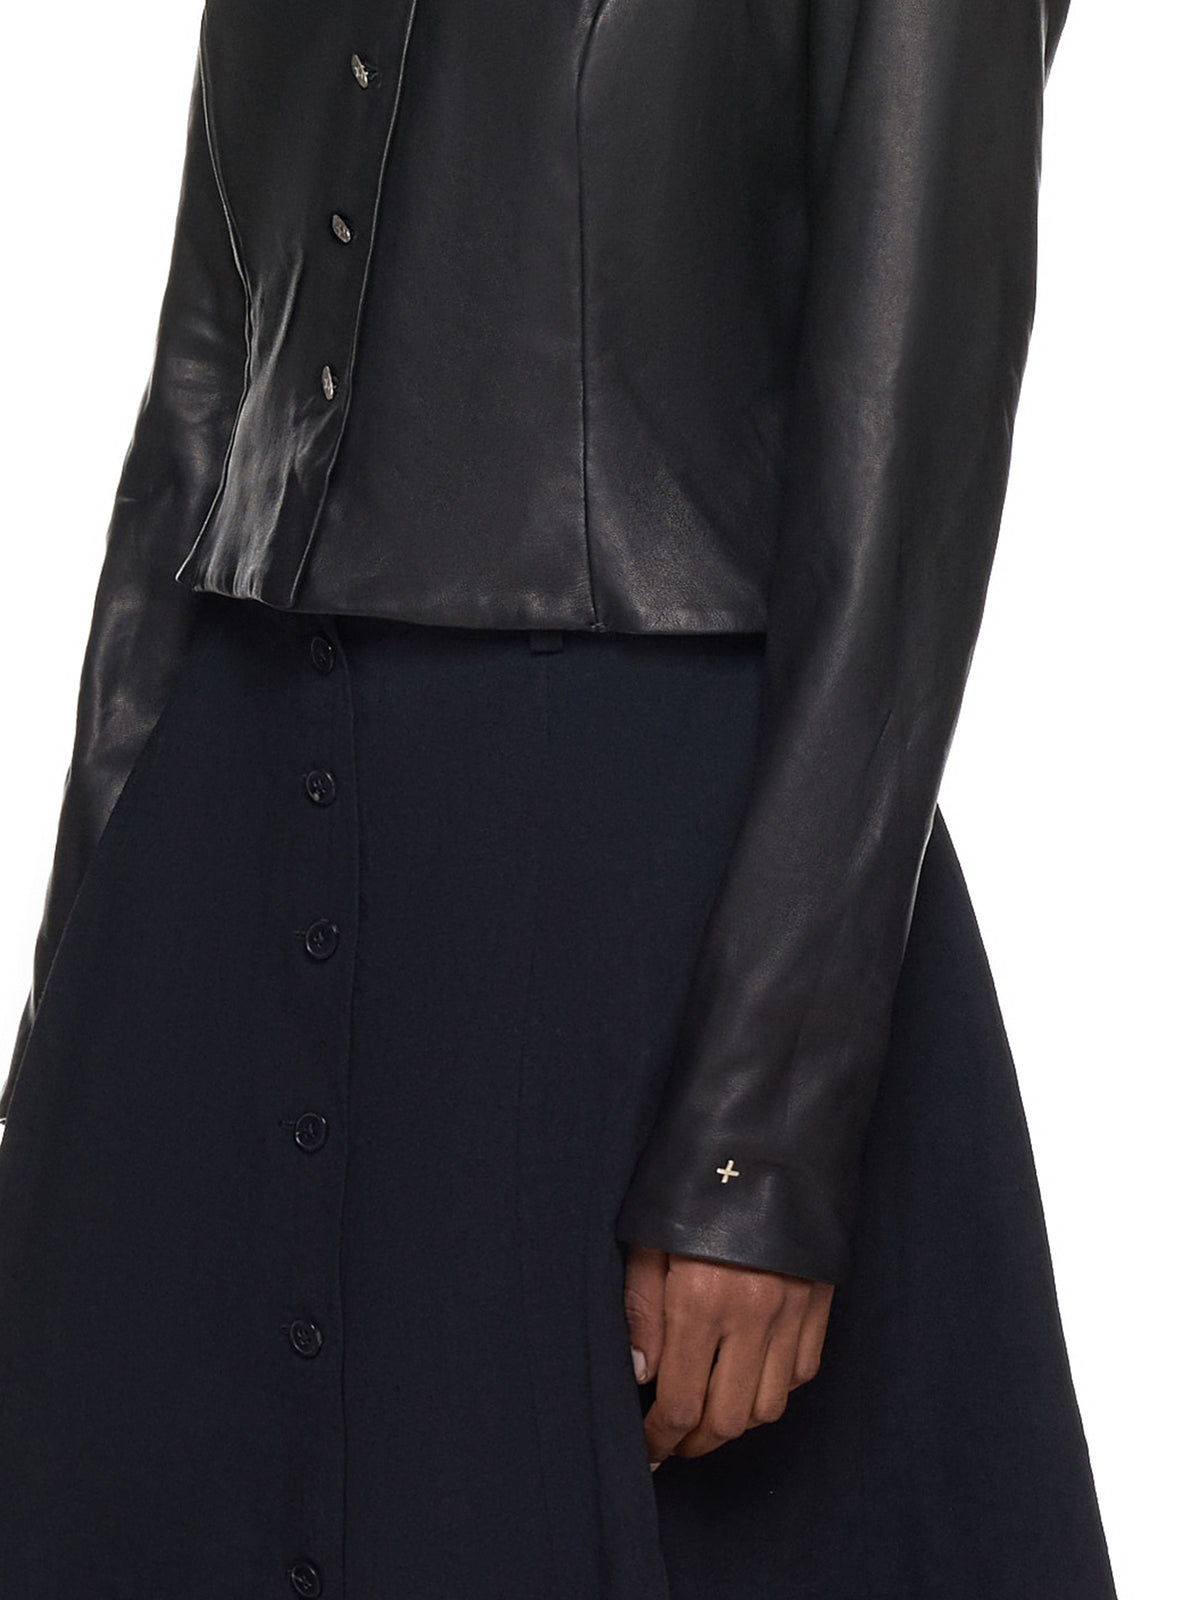 Cropped Jacket (JW102C-TEX-0-5-BLACK)